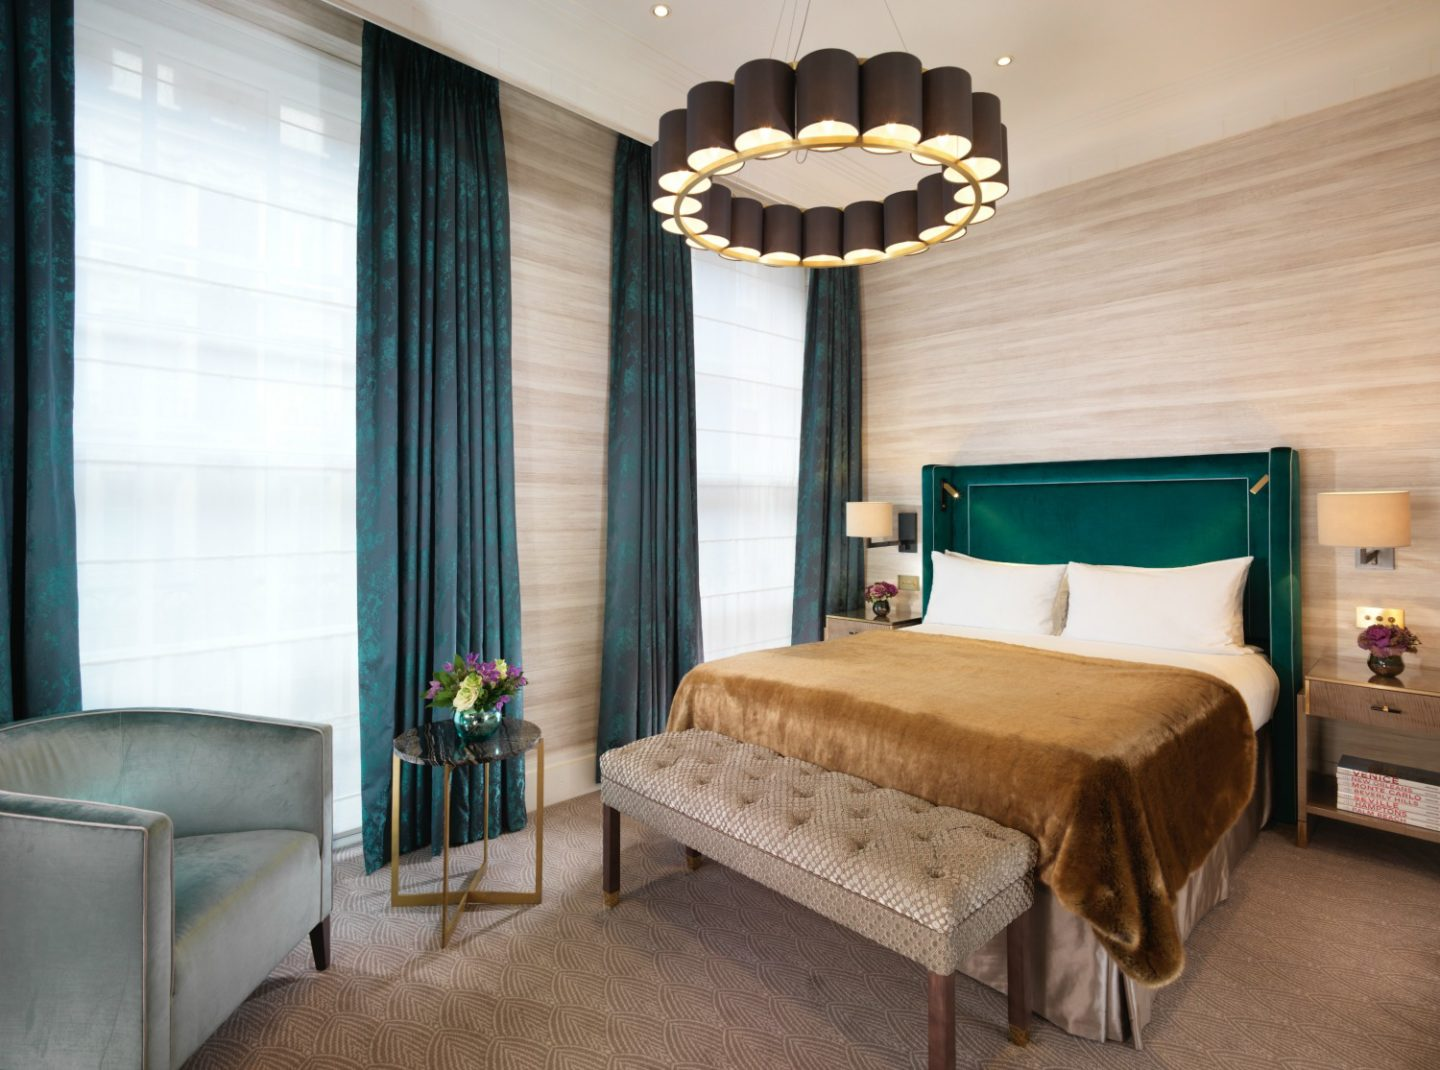 Flemings Mayfair Hotel - London 's boutique hotels